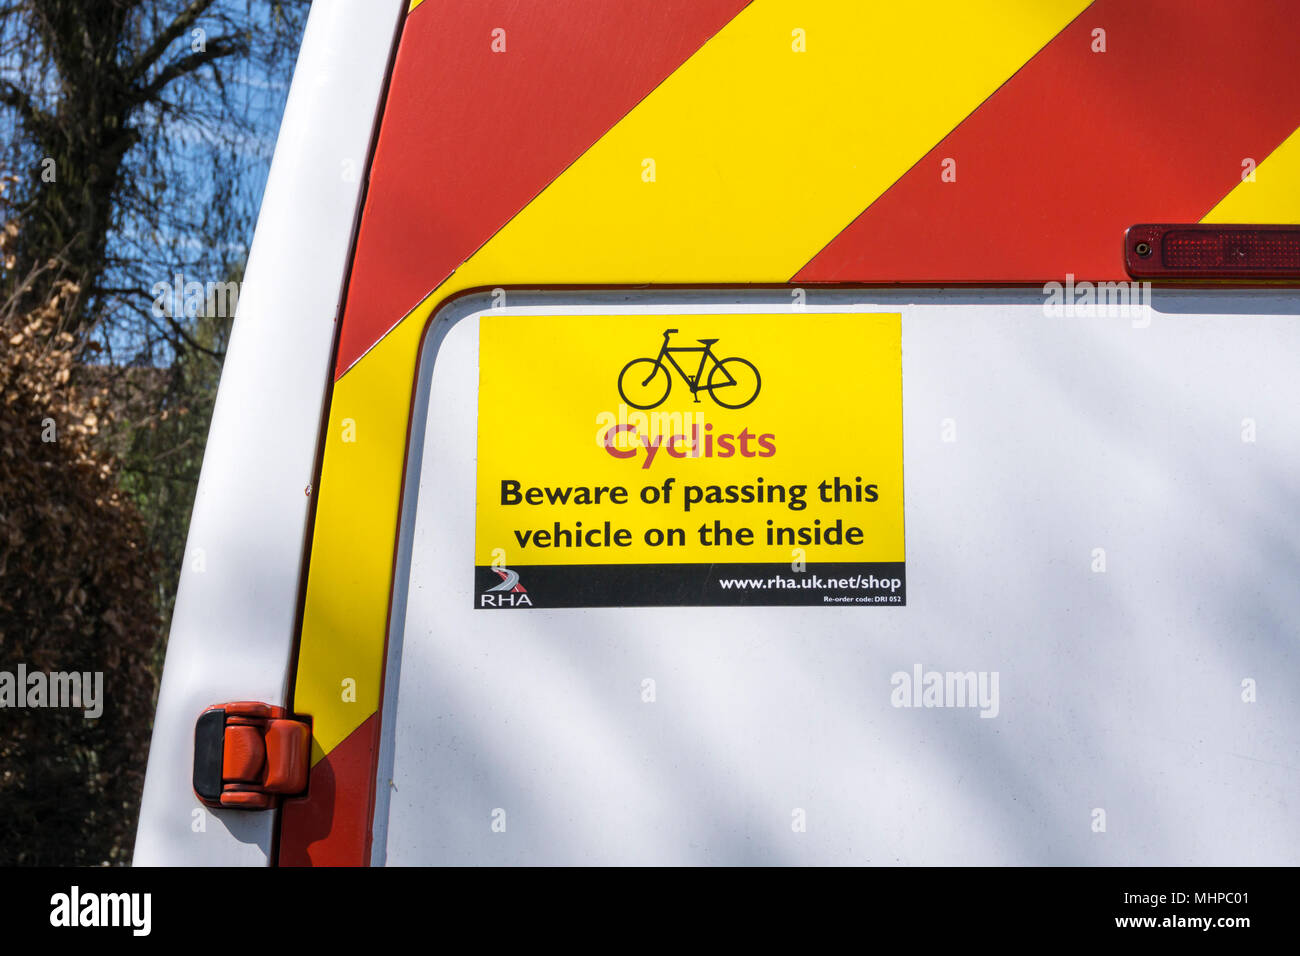 Sign on back of van reads:  Cyclists Beware of passing this vehicle on the inside. - Stock Image